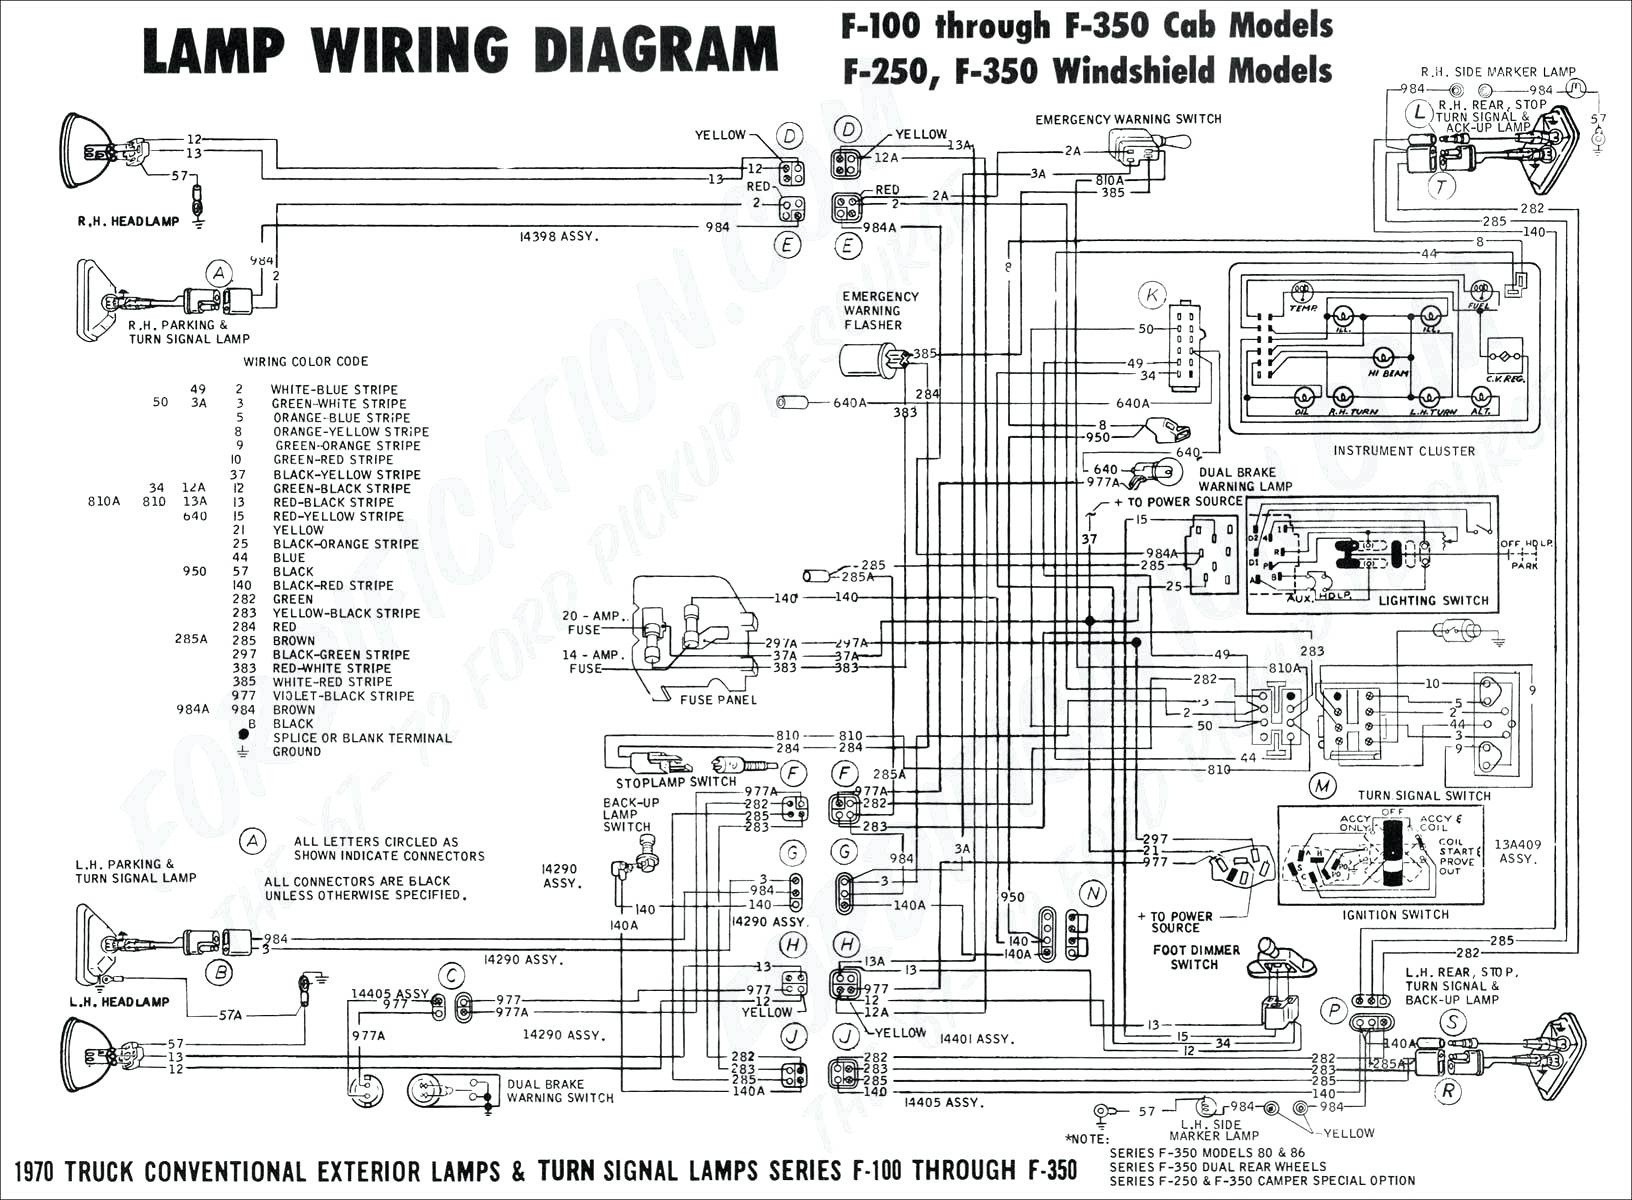 9n ford Tractor Wiring Diagram 1999 F53 Wiring Diagram Experts Wiring Diagram • Of 9n ford Tractor Wiring Diagram